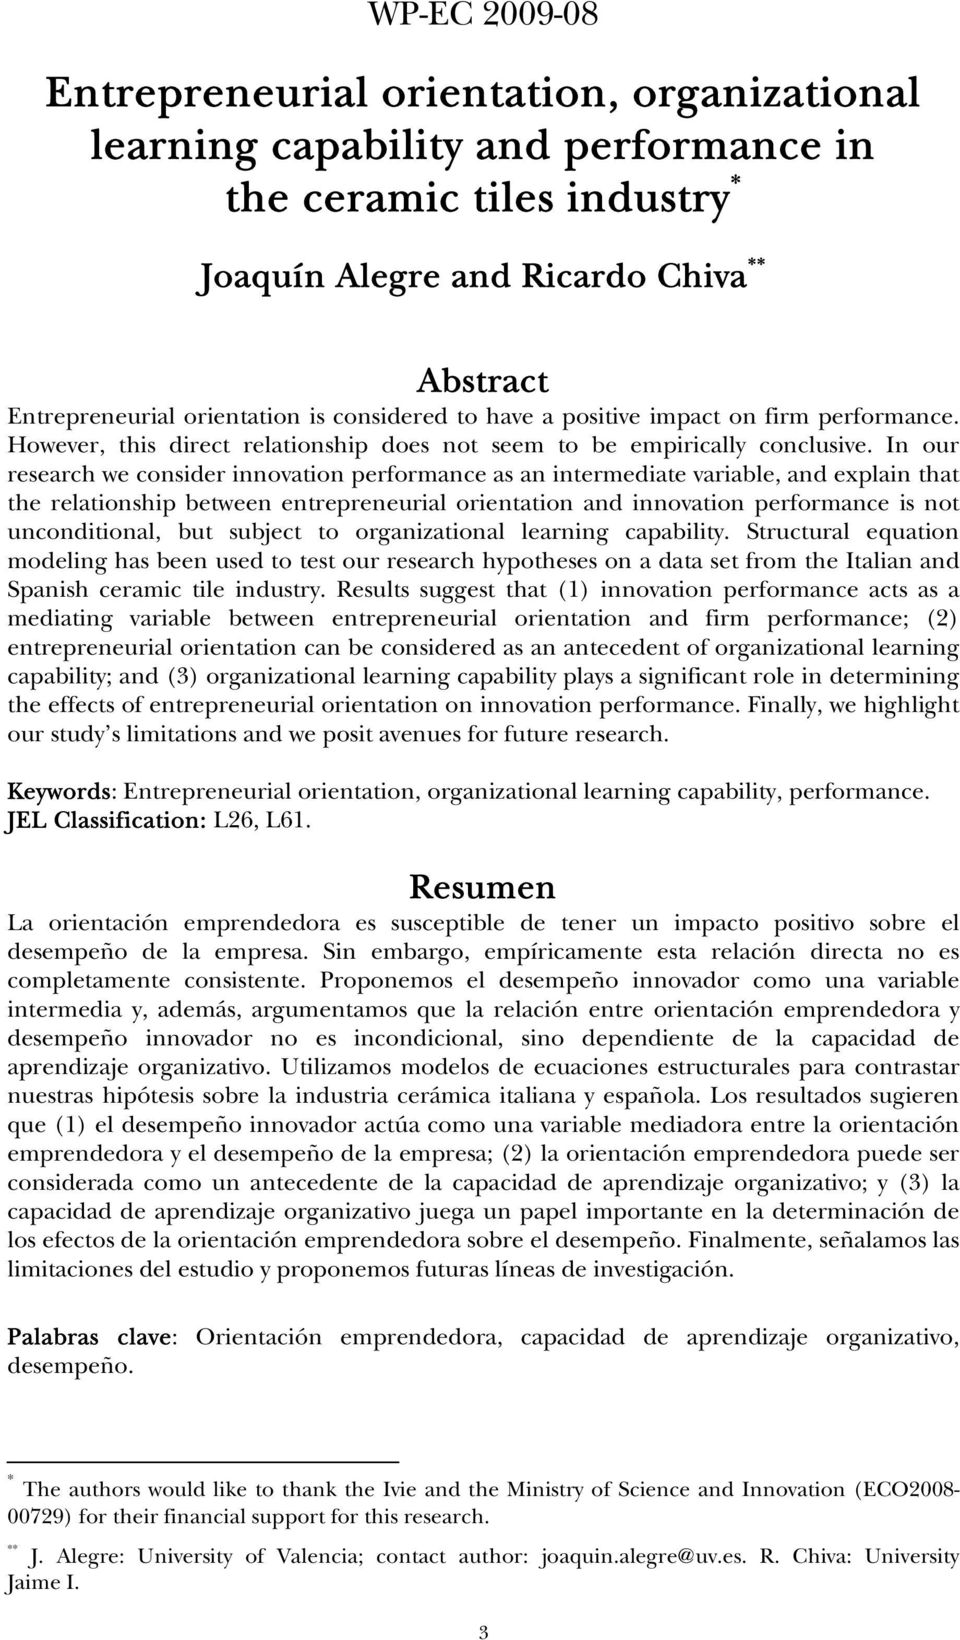 In our research we consider innovation performance as an intermediate variable, and explain that the relationship between entrepreneurial orientation and innovation performance is not unconditional,